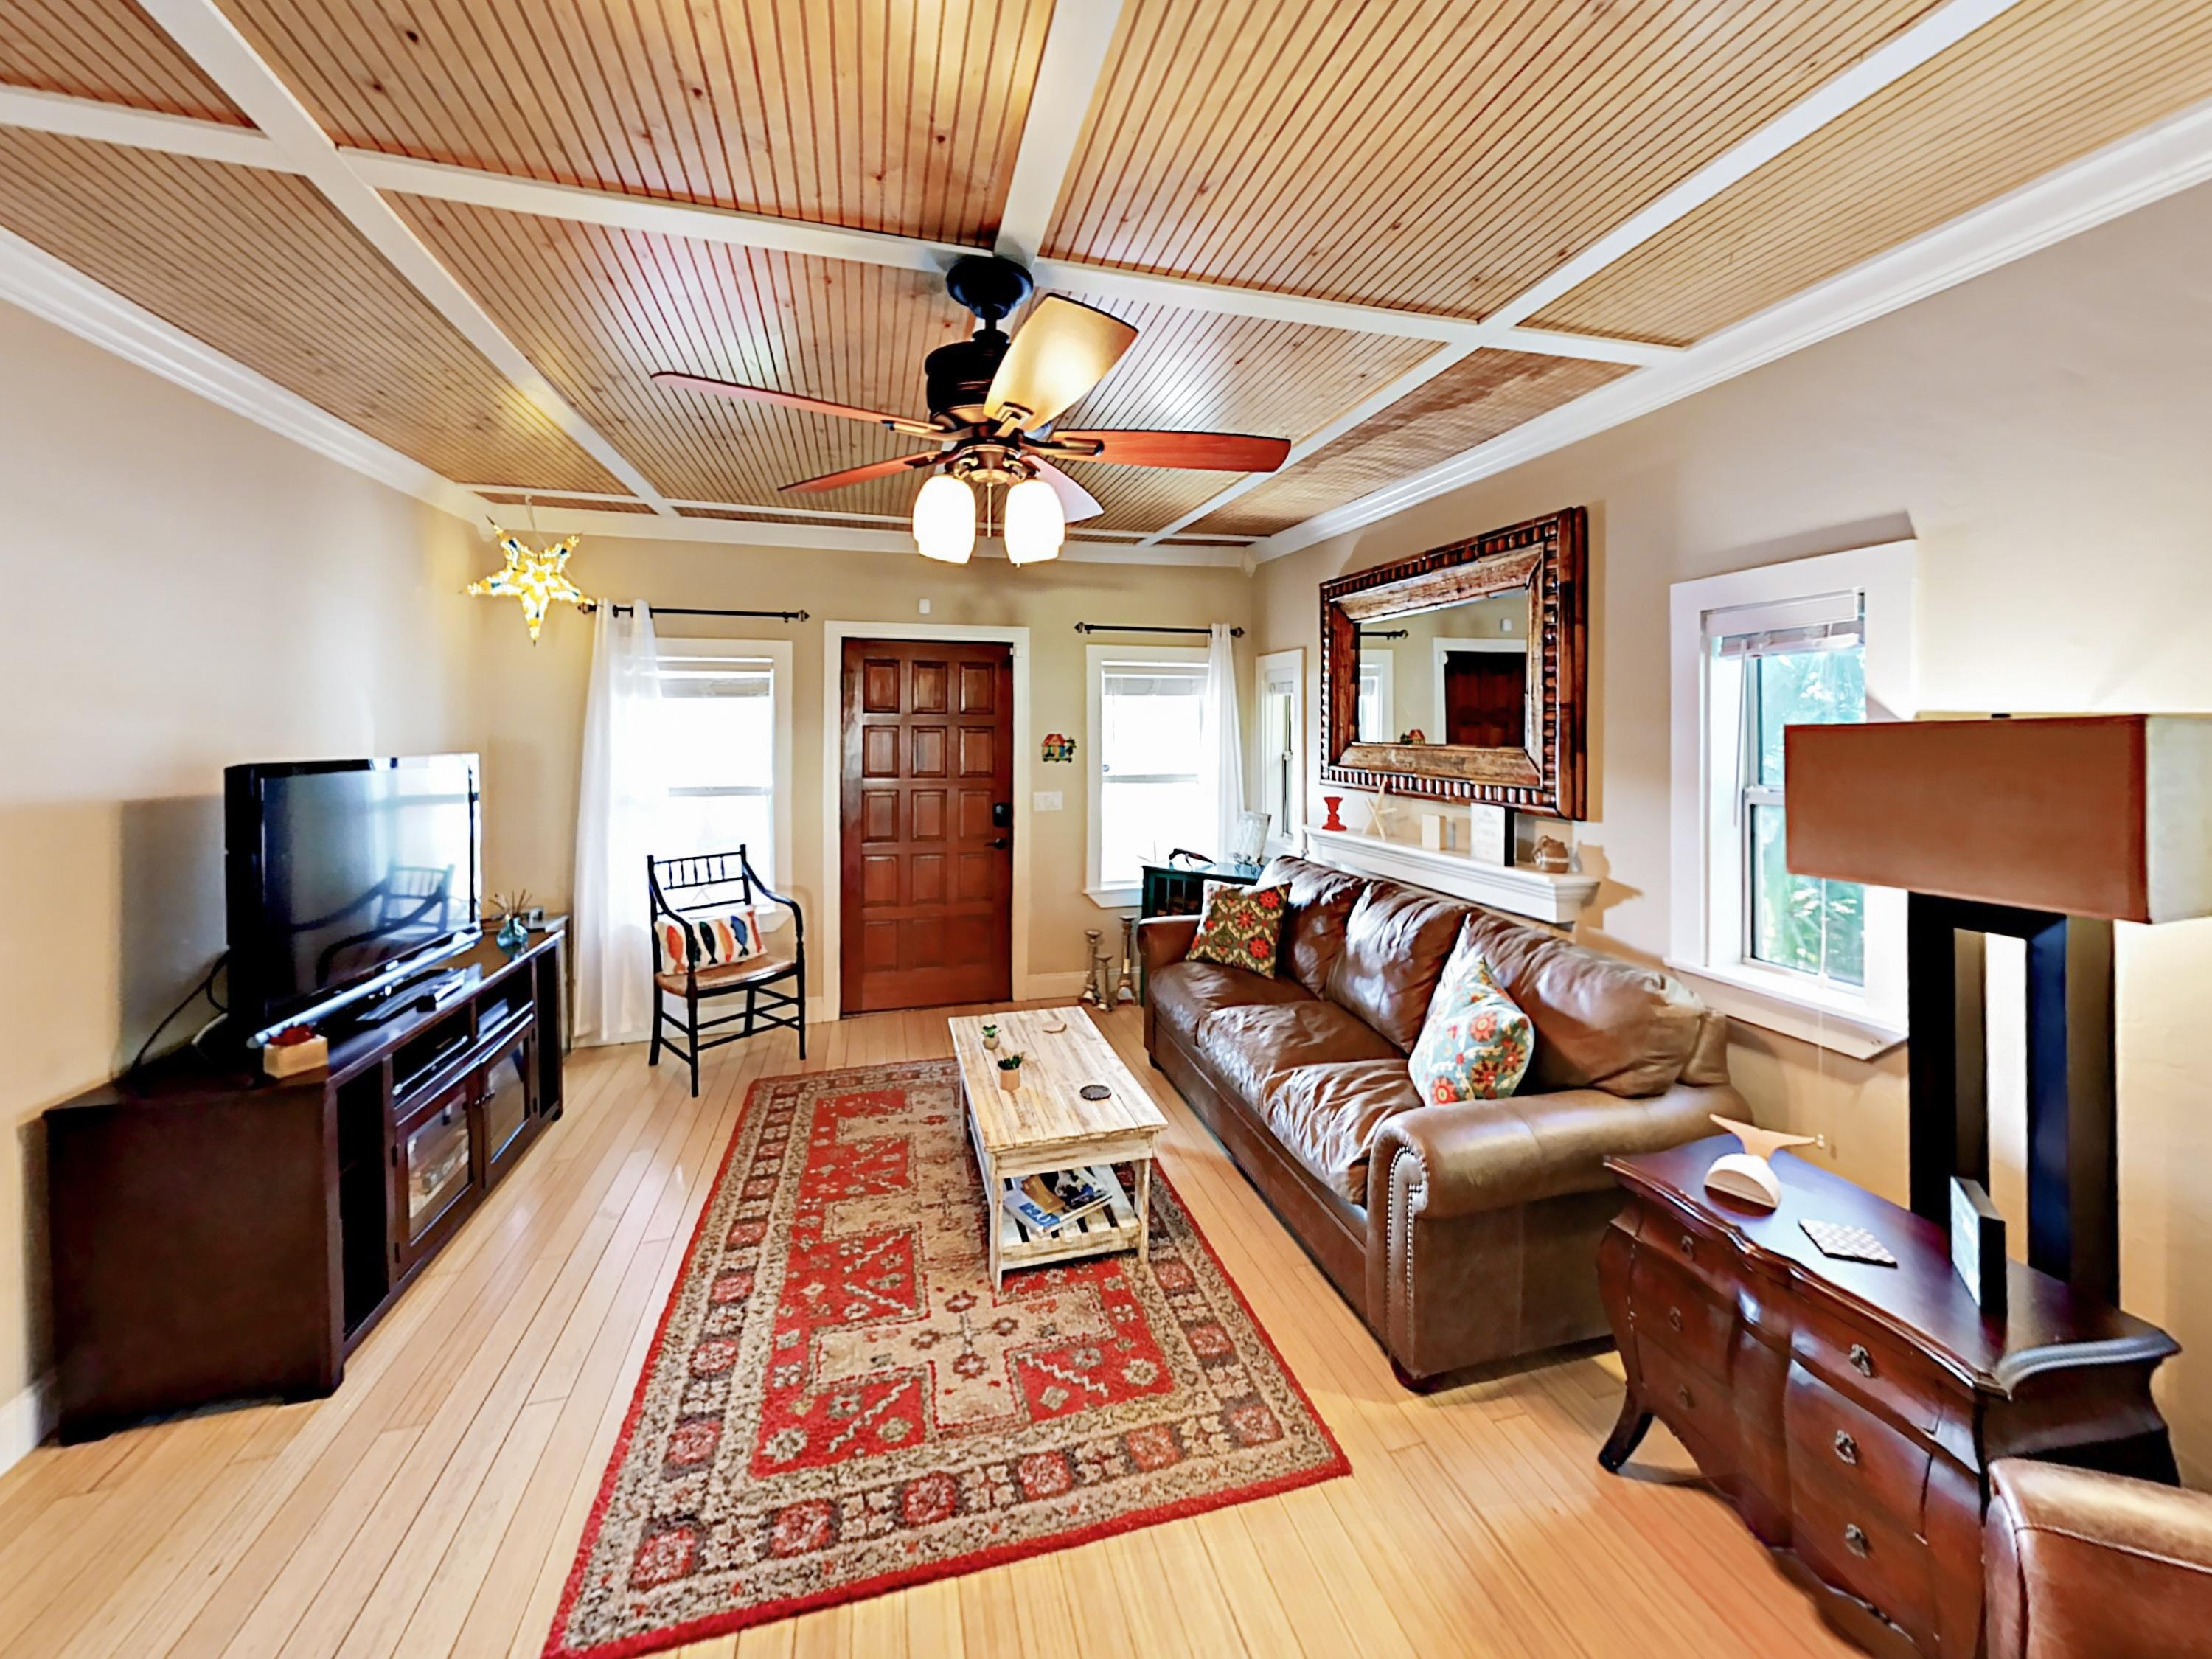 Beautifully Restored 1920's Bungalow, Near Beach